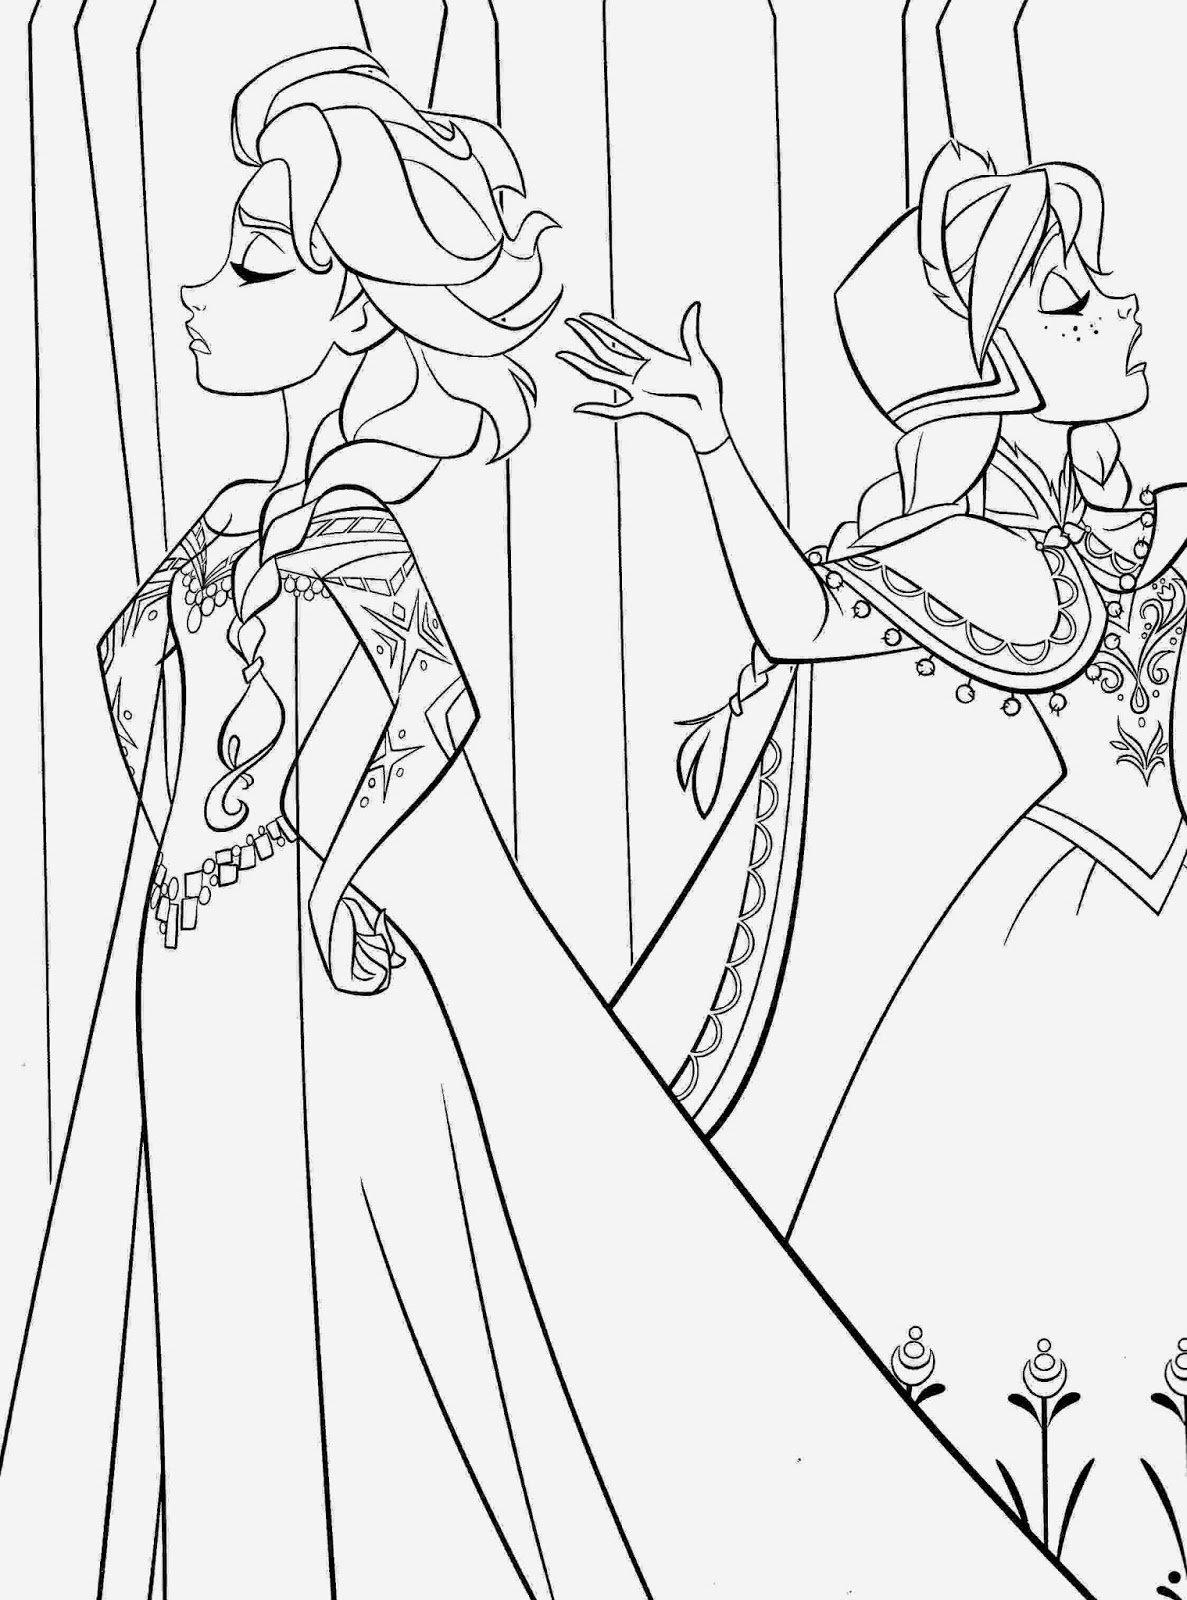 elsa and anna frozen coloring pages disney movie princesses quotfrozenquot printable coloring pages pages elsa coloring and frozen anna